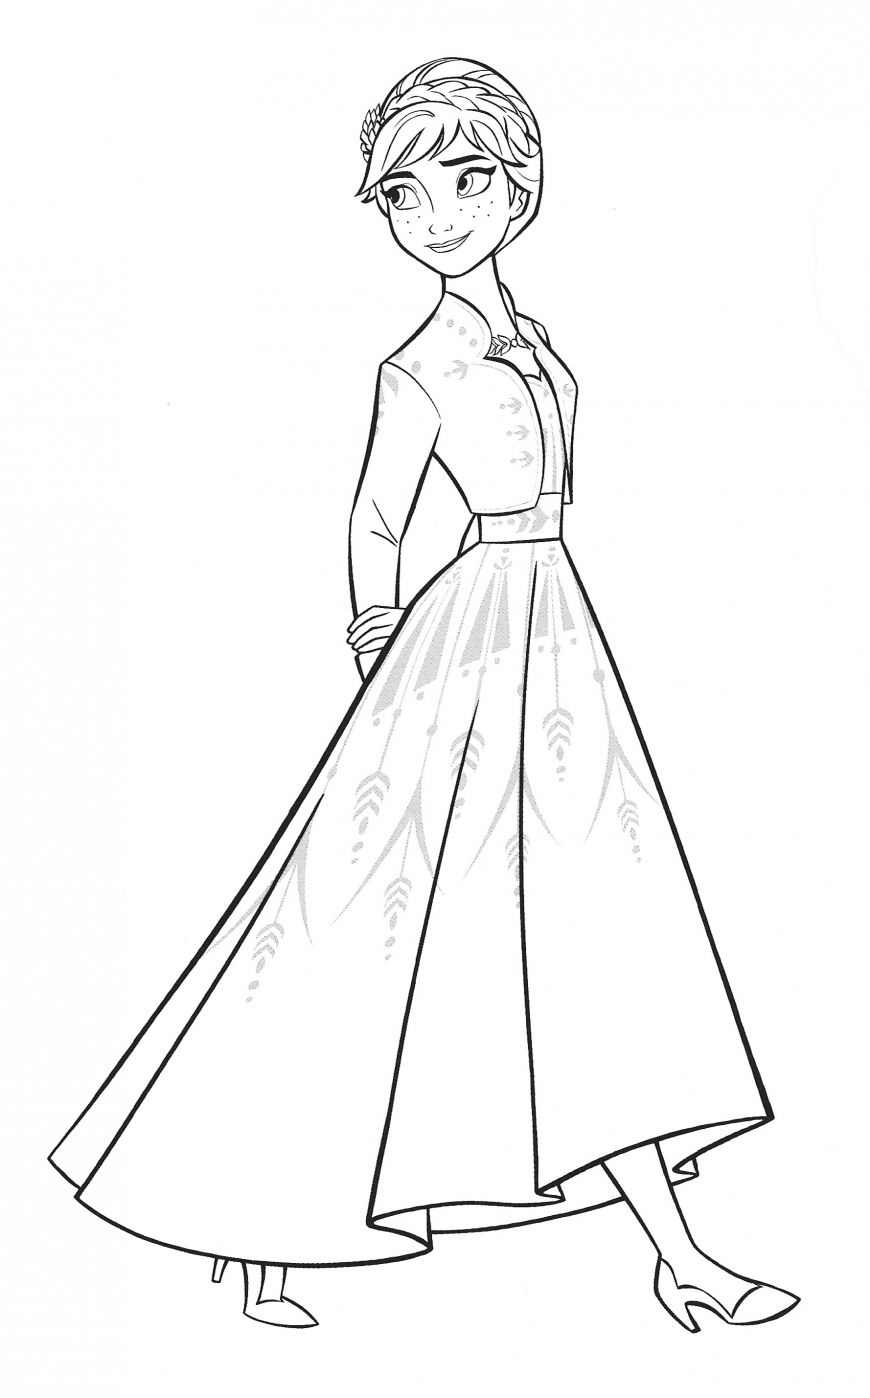 New Frozen 2 Coloring Pages With Anna In 2020 Frozen Coloring